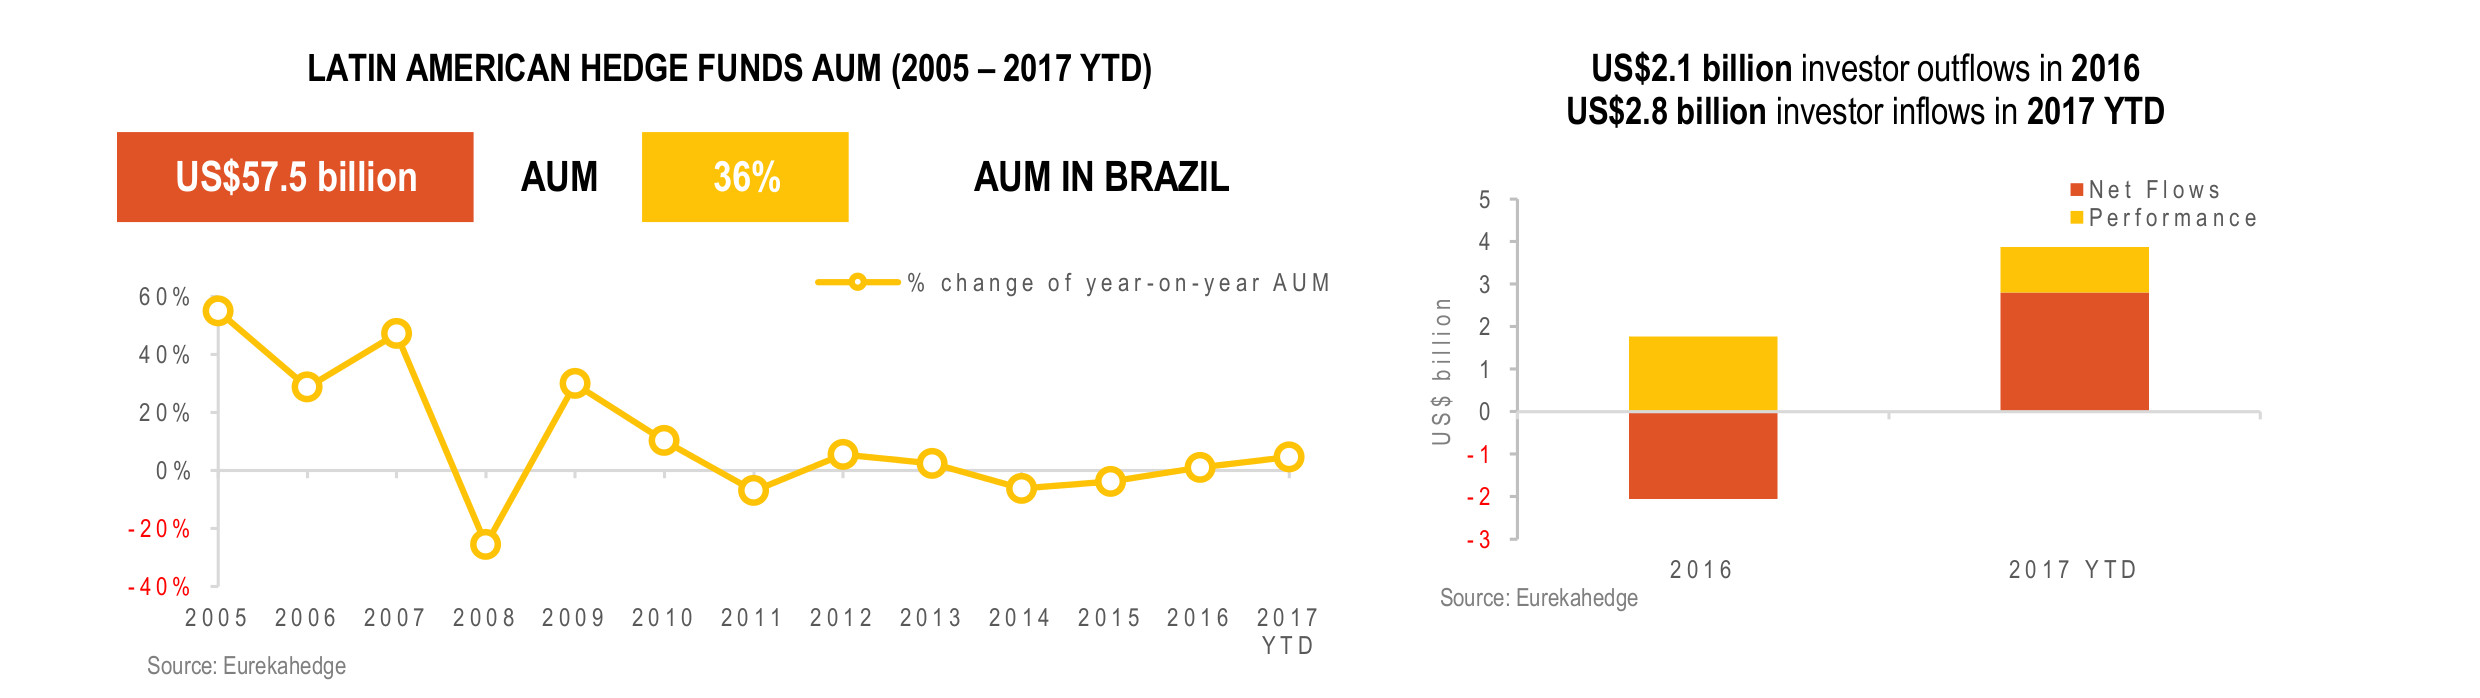 Latin American Hedge Fund Infographic June 2017- AUM